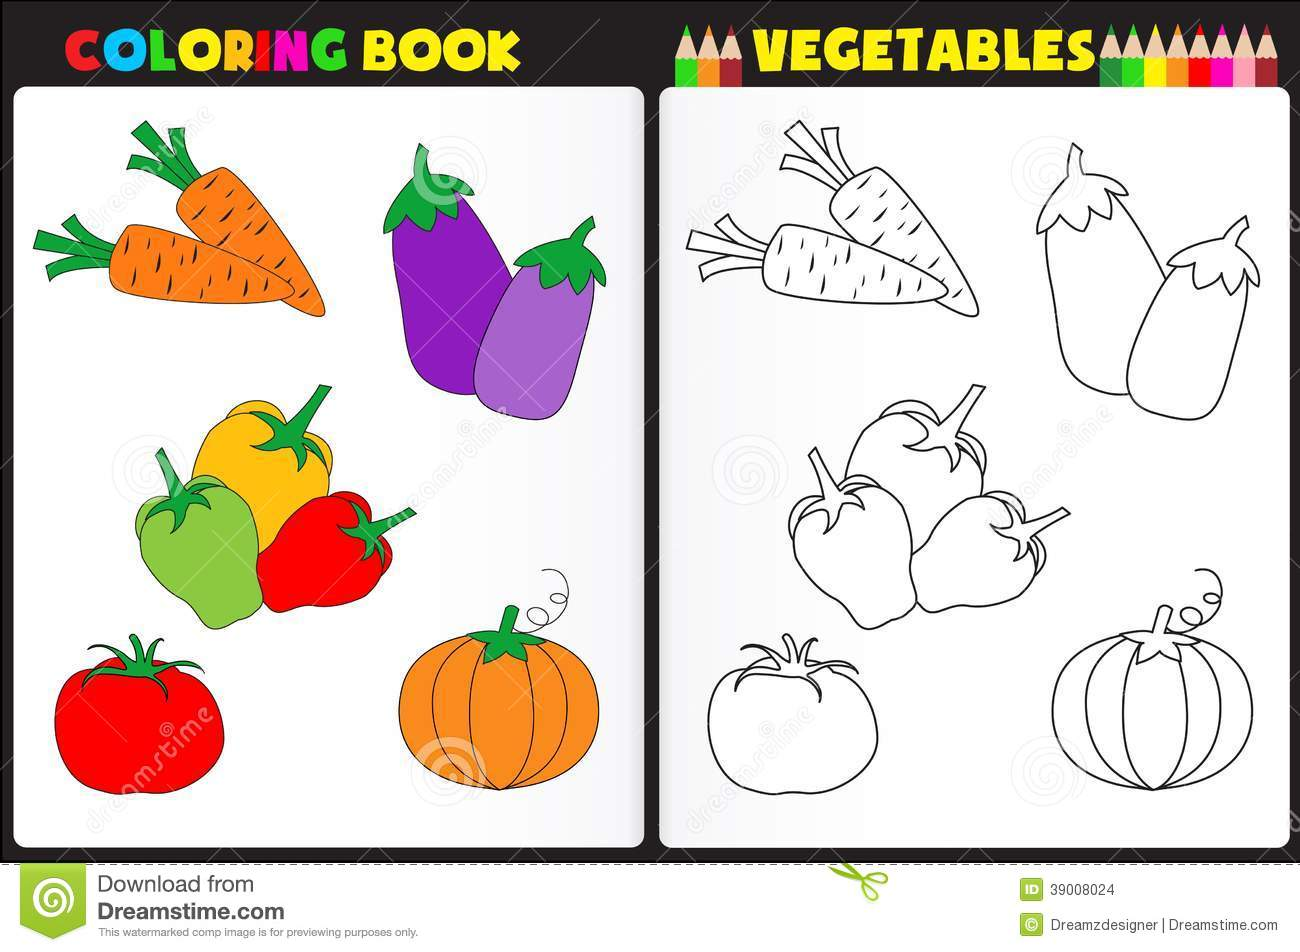 Book Page For Kids With Colorful Vegetables And Sketches To Color